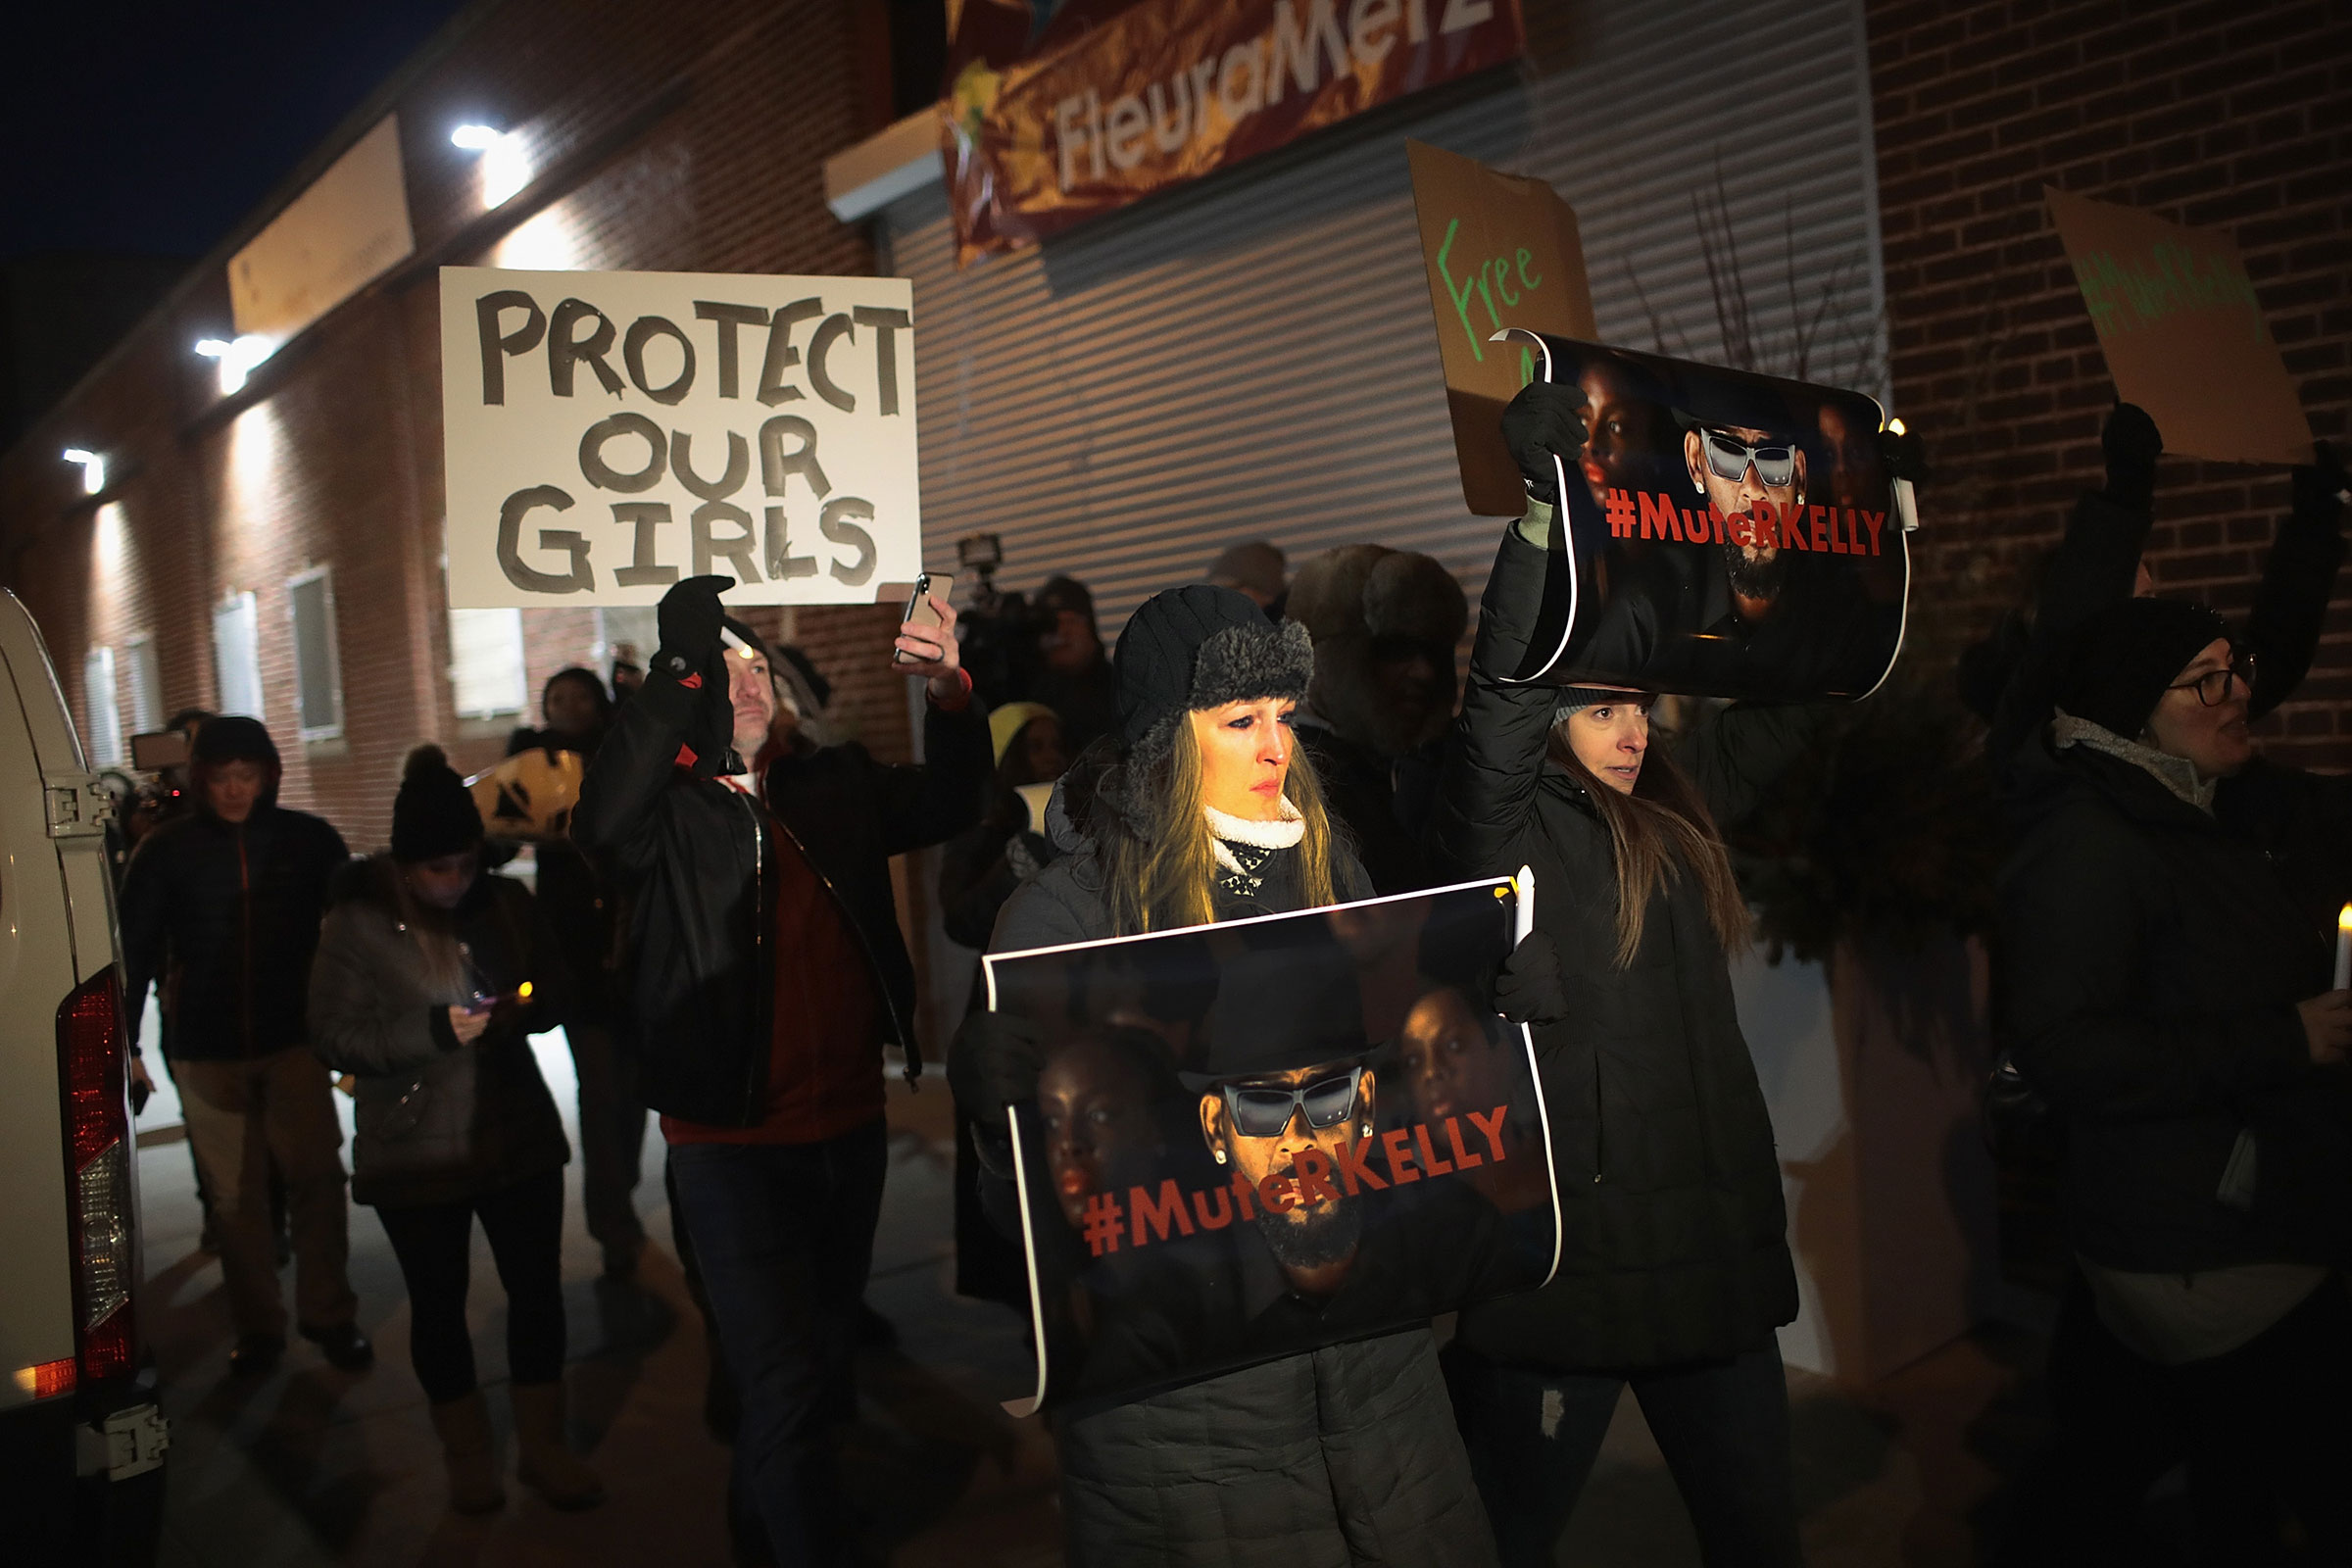 Demonstrators gather near the studio of singer R. Kelly to call for a boycott of his music after allegations of sexual abuse against young girls in Chicago, on Jan. 09, 2019.